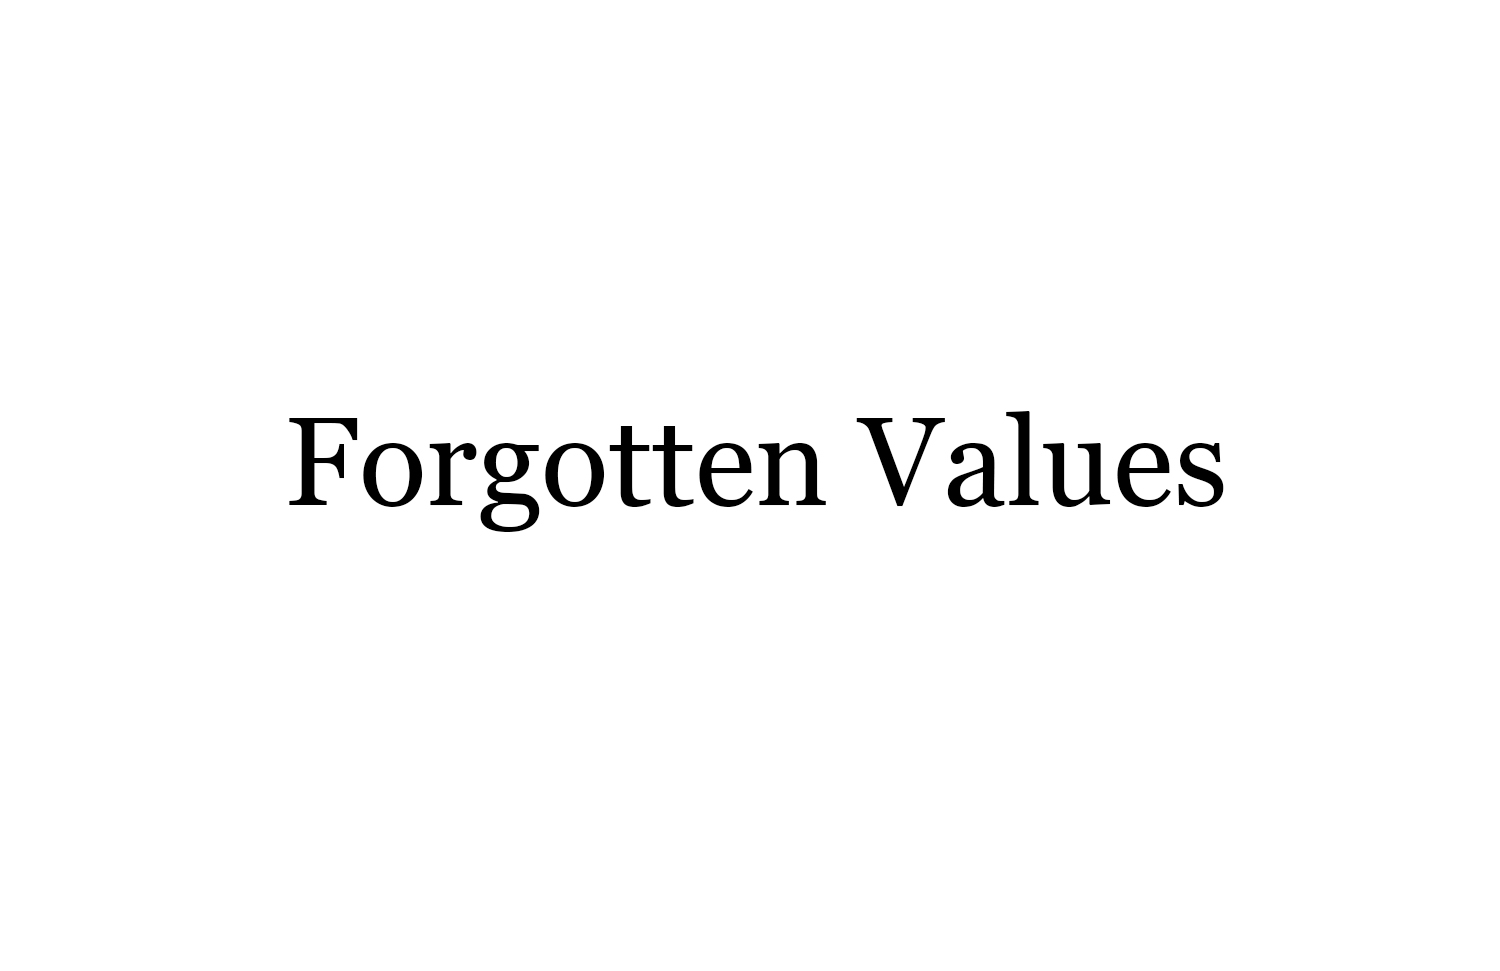 forgotten values.jpg